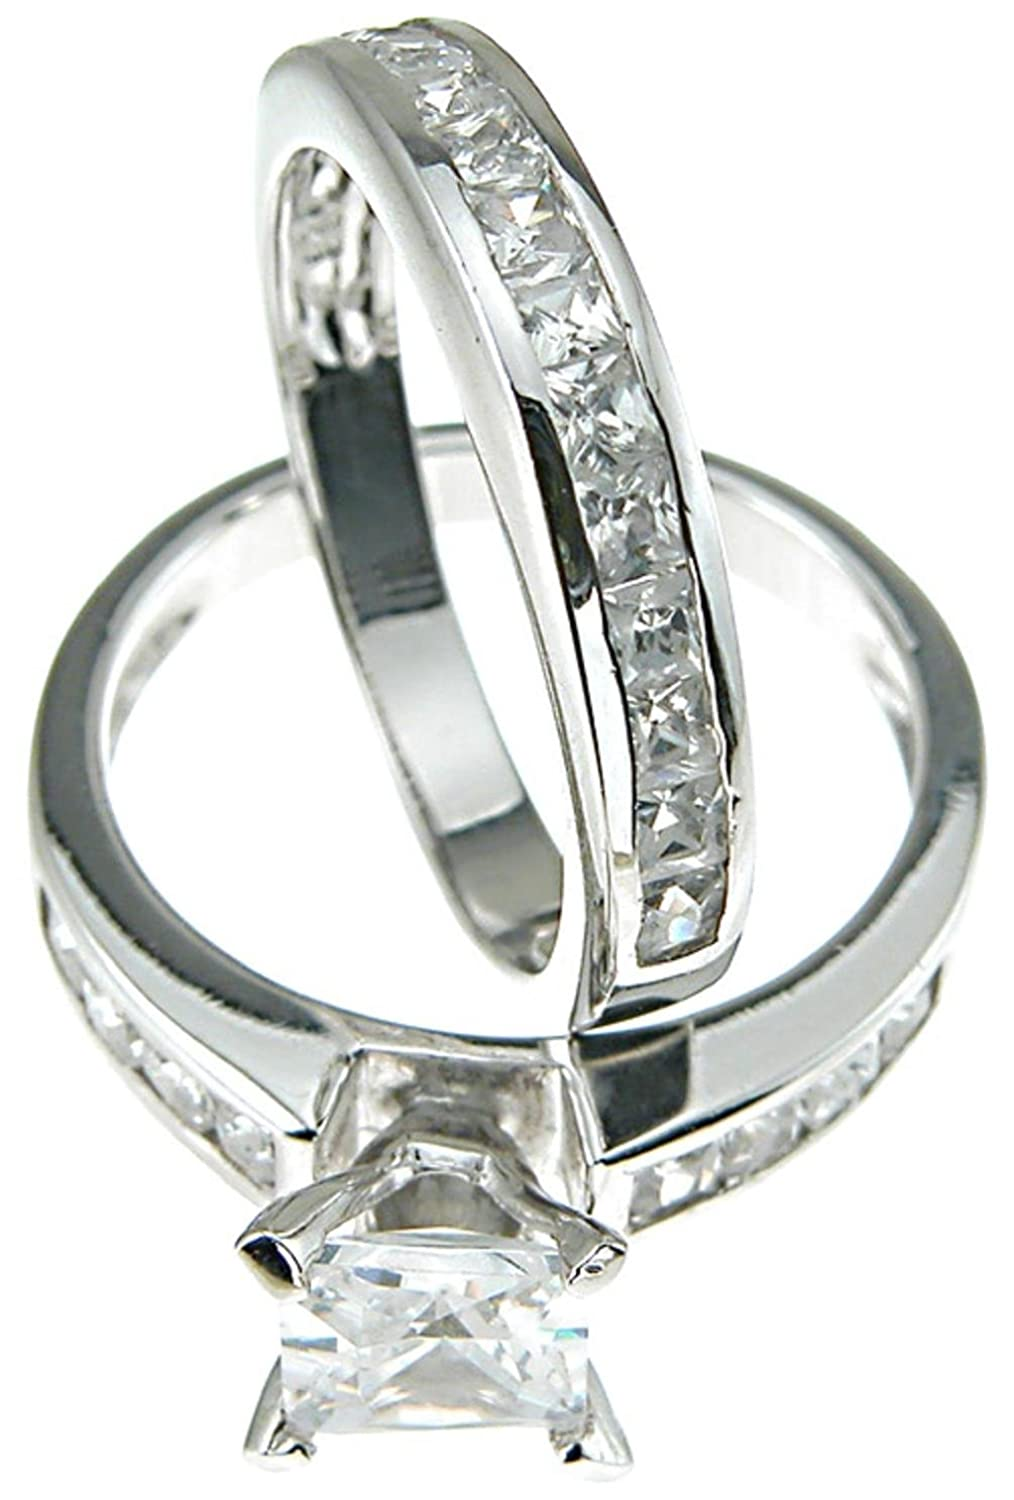 Amazon Princess Cut Wedding Band Engagement Ring Set In 925 Sterling Silver 5 Jewelry